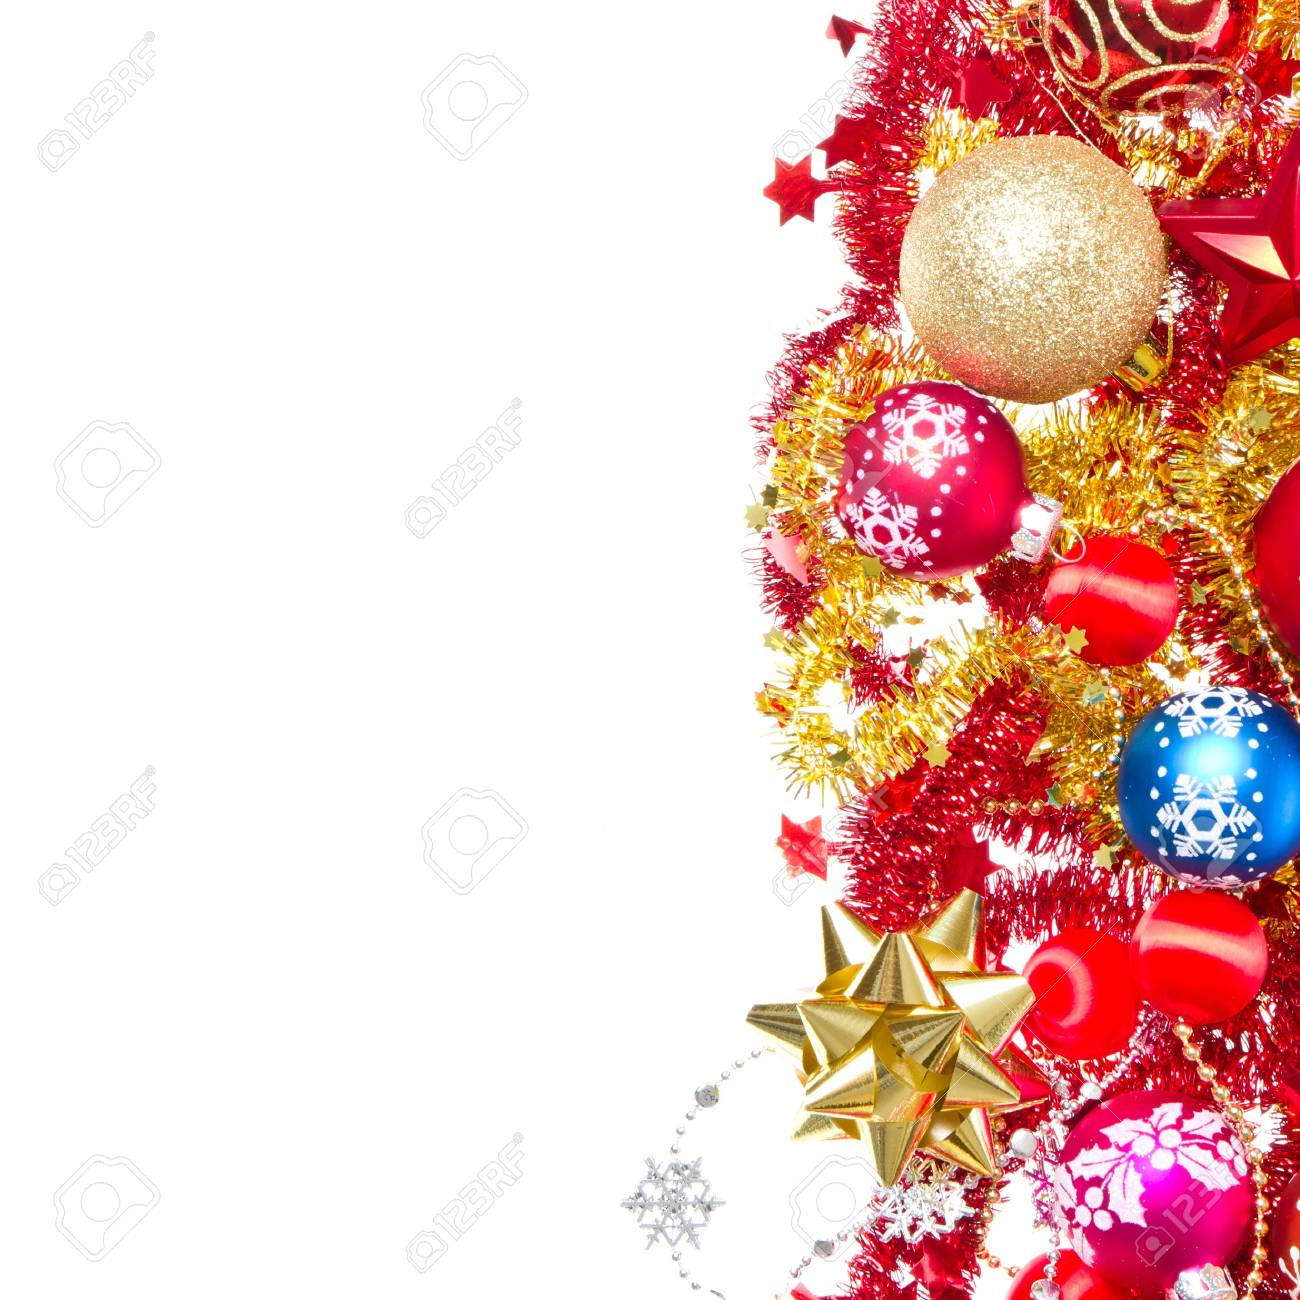 background made of christmas balls and tinsel Stock Photo - 12306674